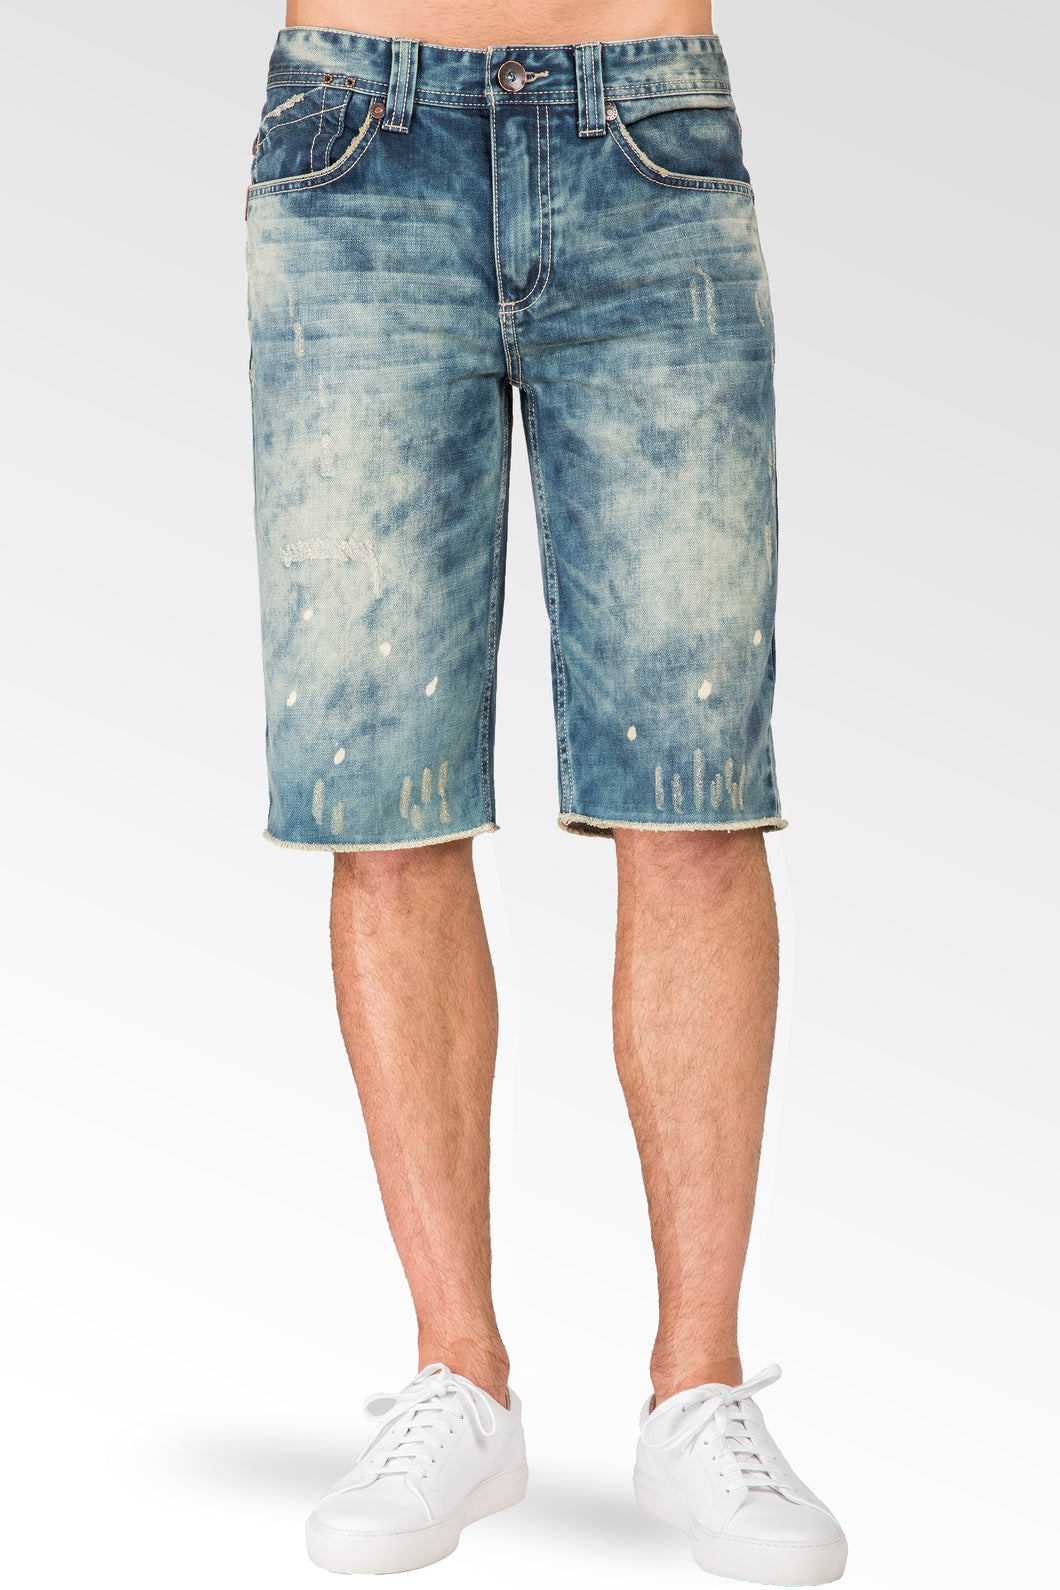 Relaxed Midrise Cut Off Premium denim 13